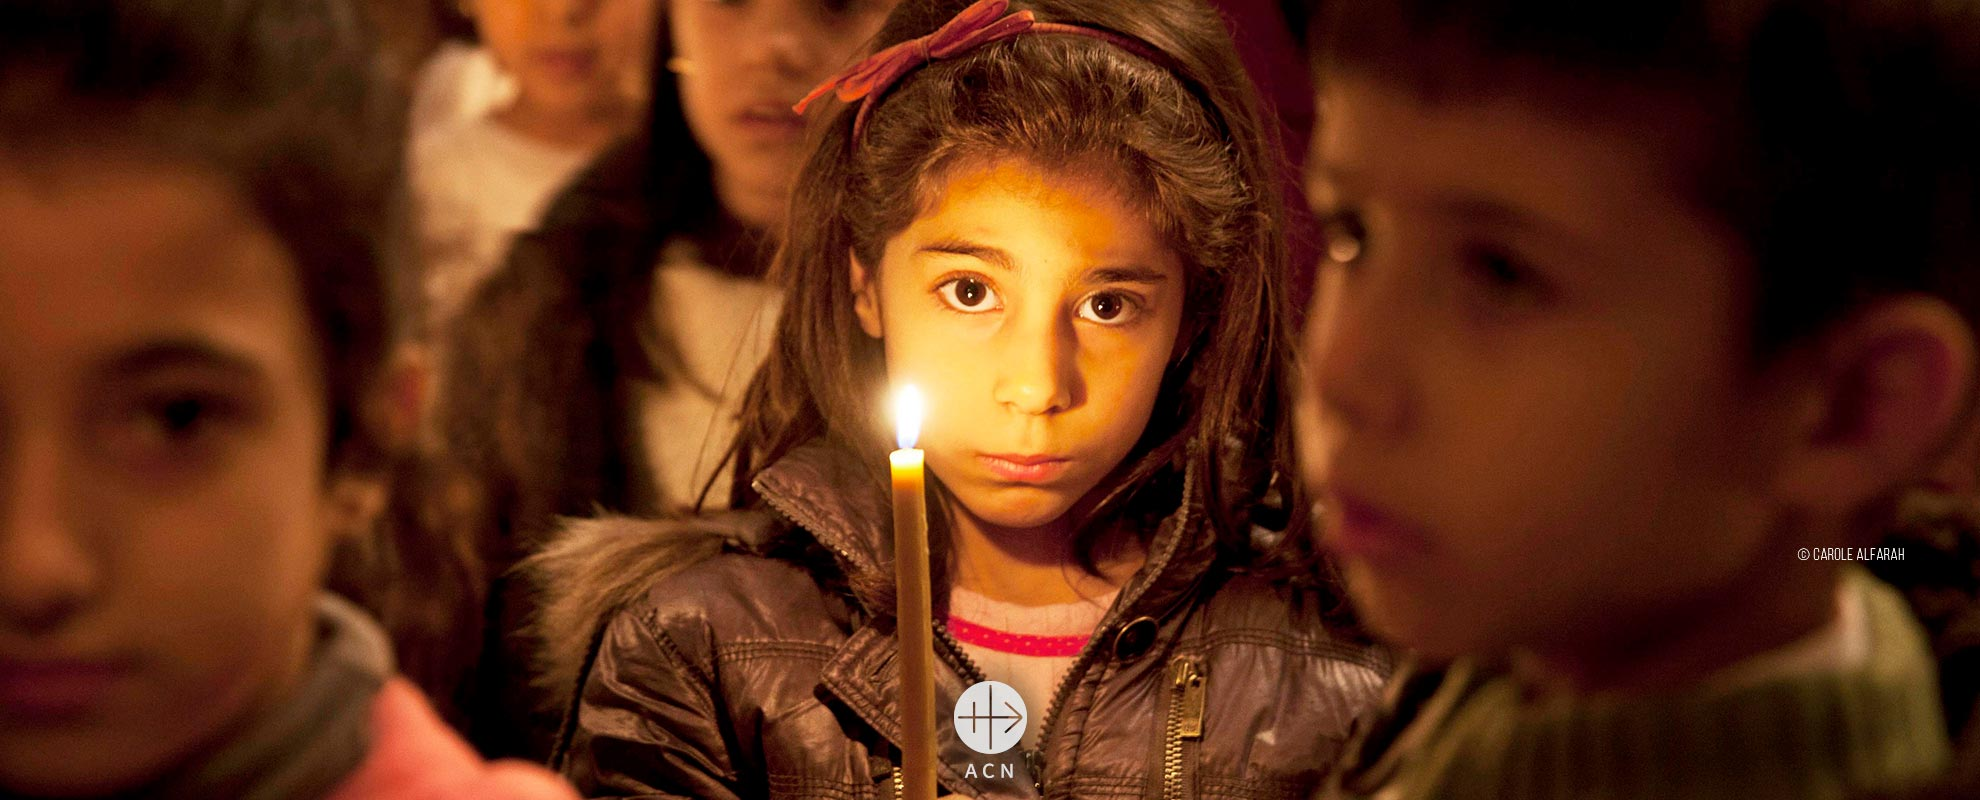 Syria's Churches under fire